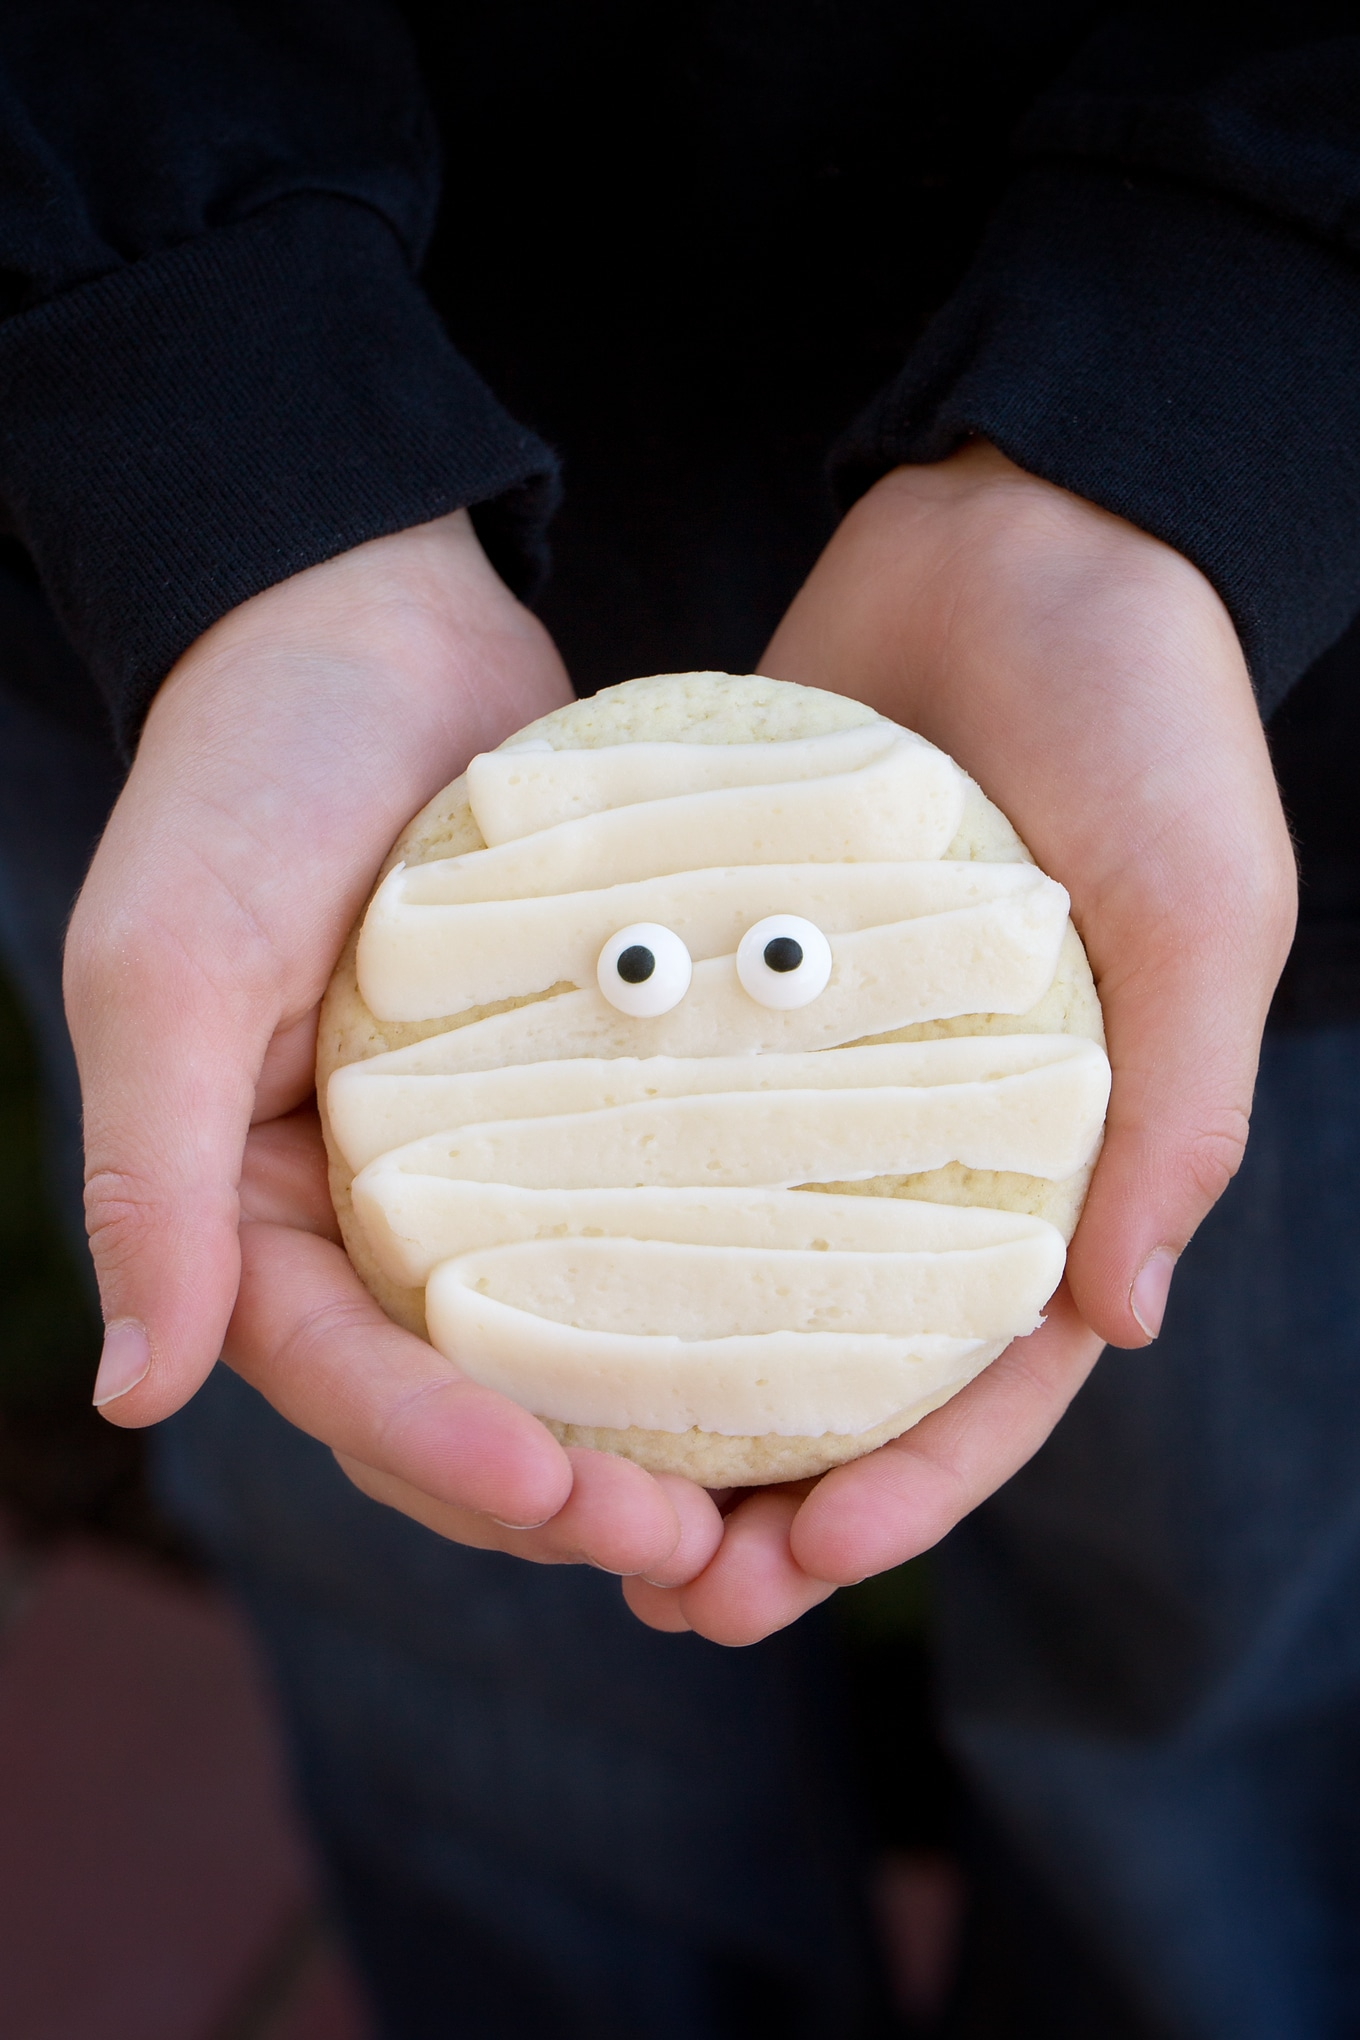 Child Holding Halloween Cookie